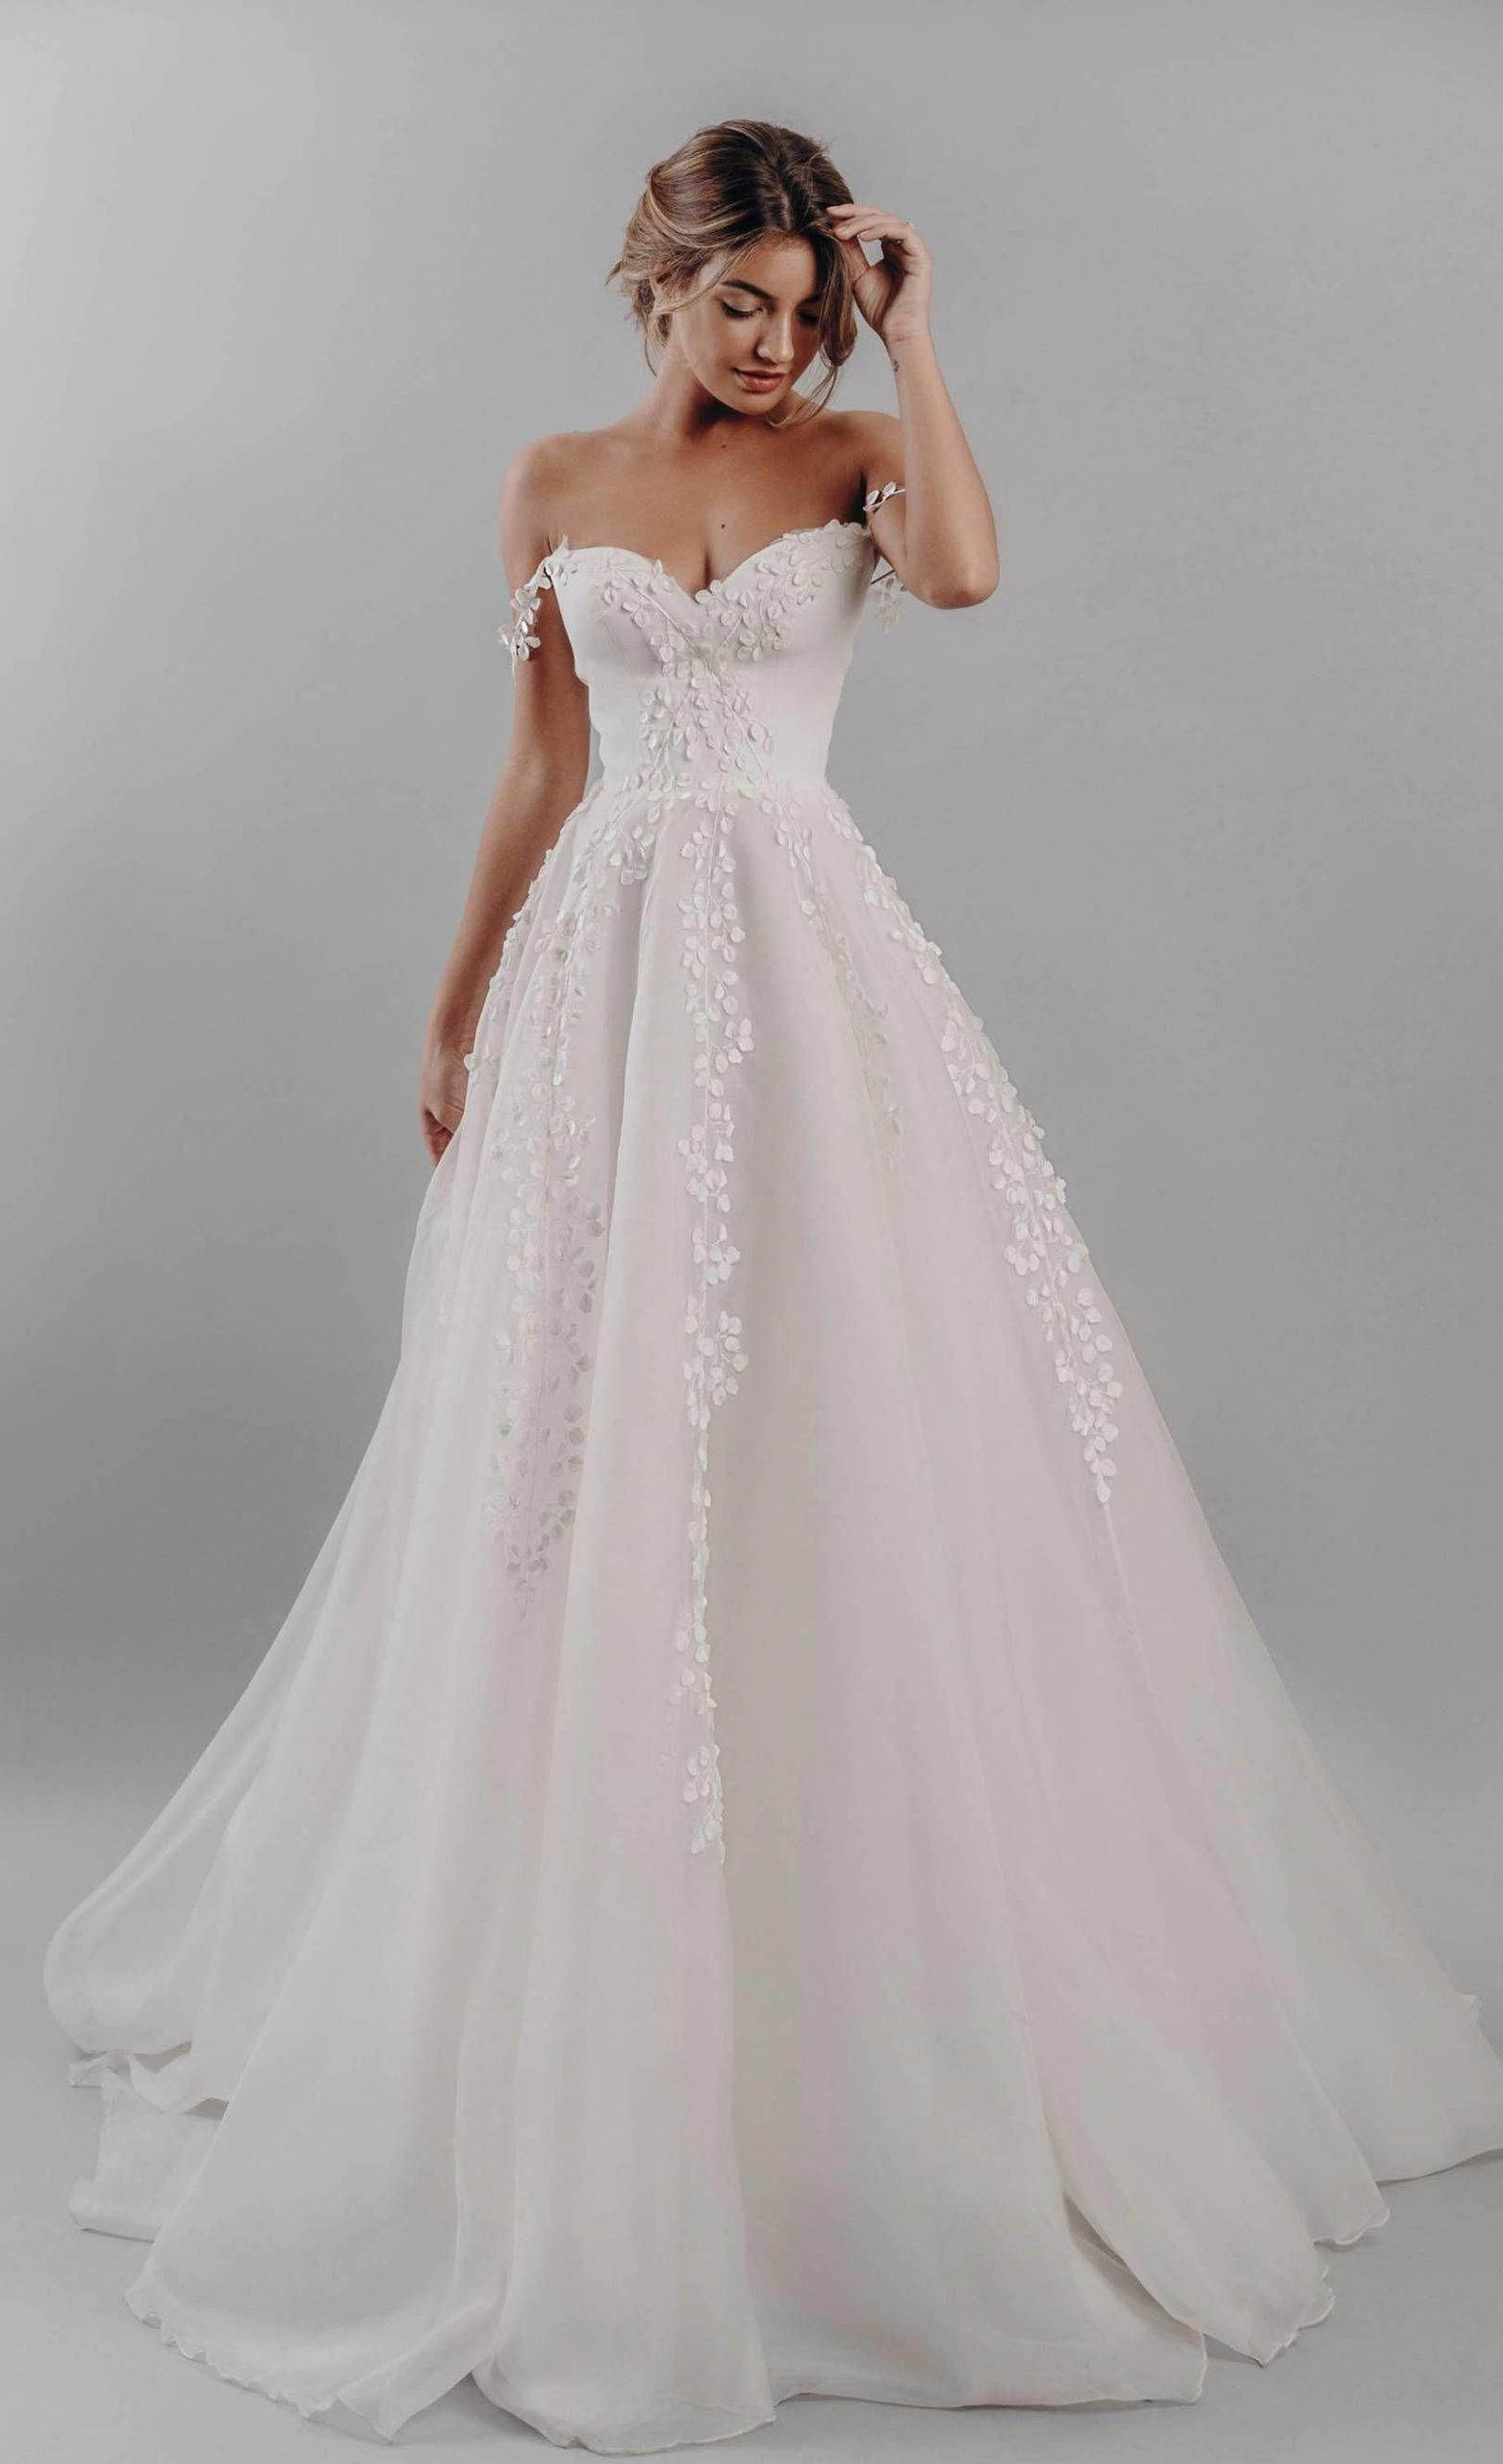 Inexpensive Wedding Dresses Wedding Dresses Under 100